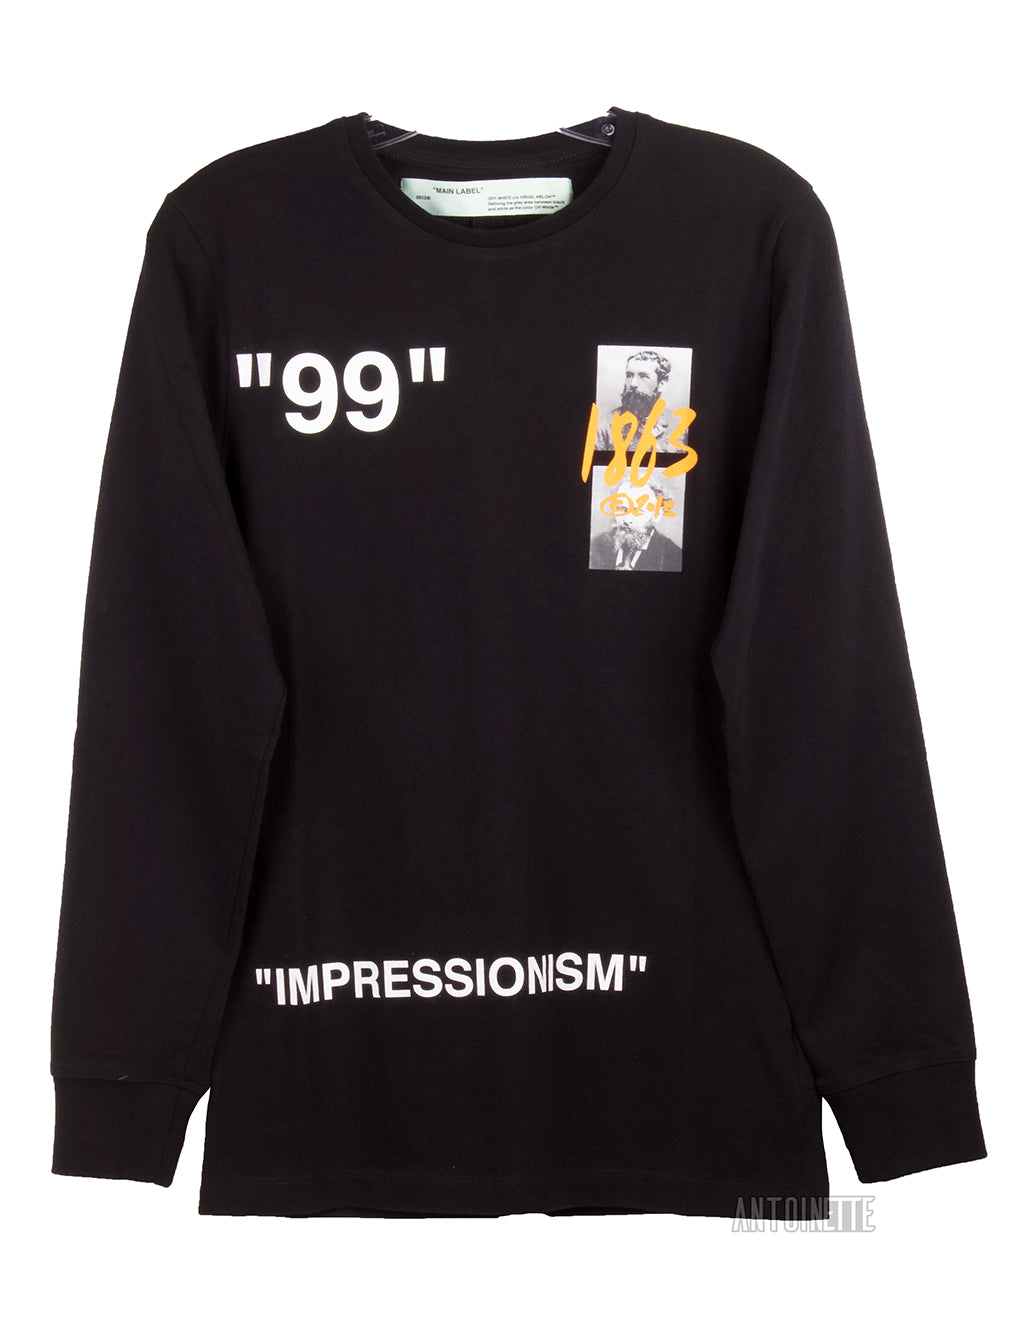 6e6cece7747b Off-White Black Summer 1863 Impressionism Long-Sleeve Shirt ...